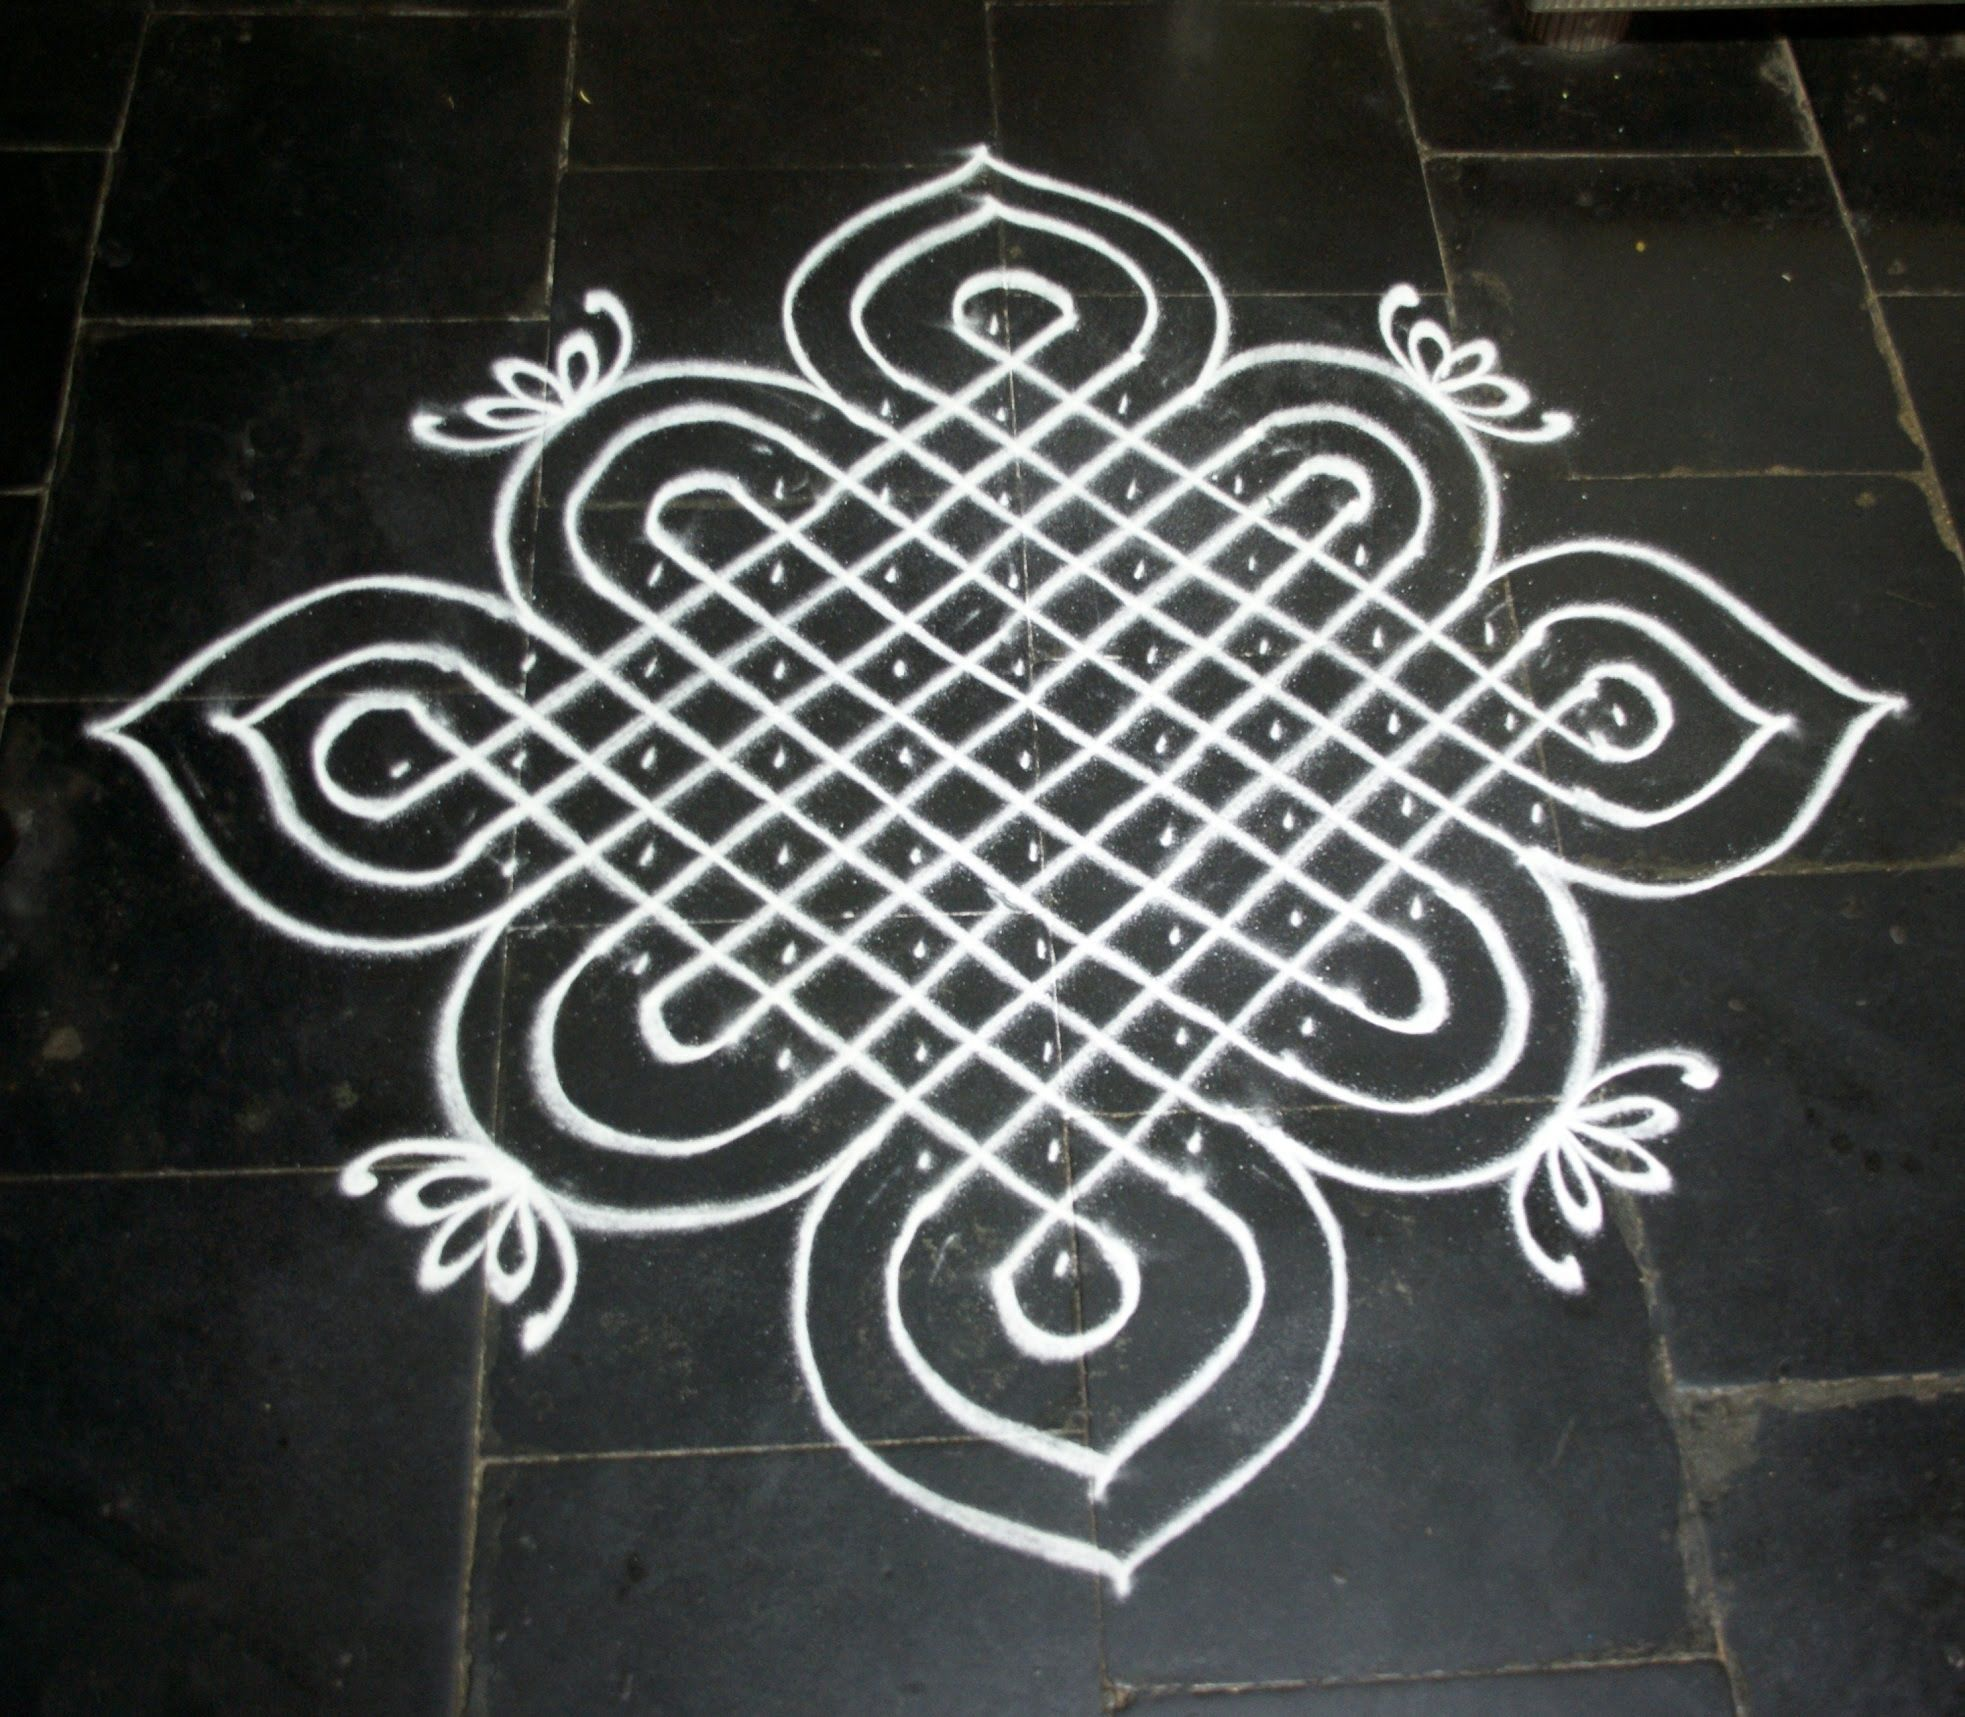 CHIKKU KOLAM (111 DOTS) Colorful rangoli designs